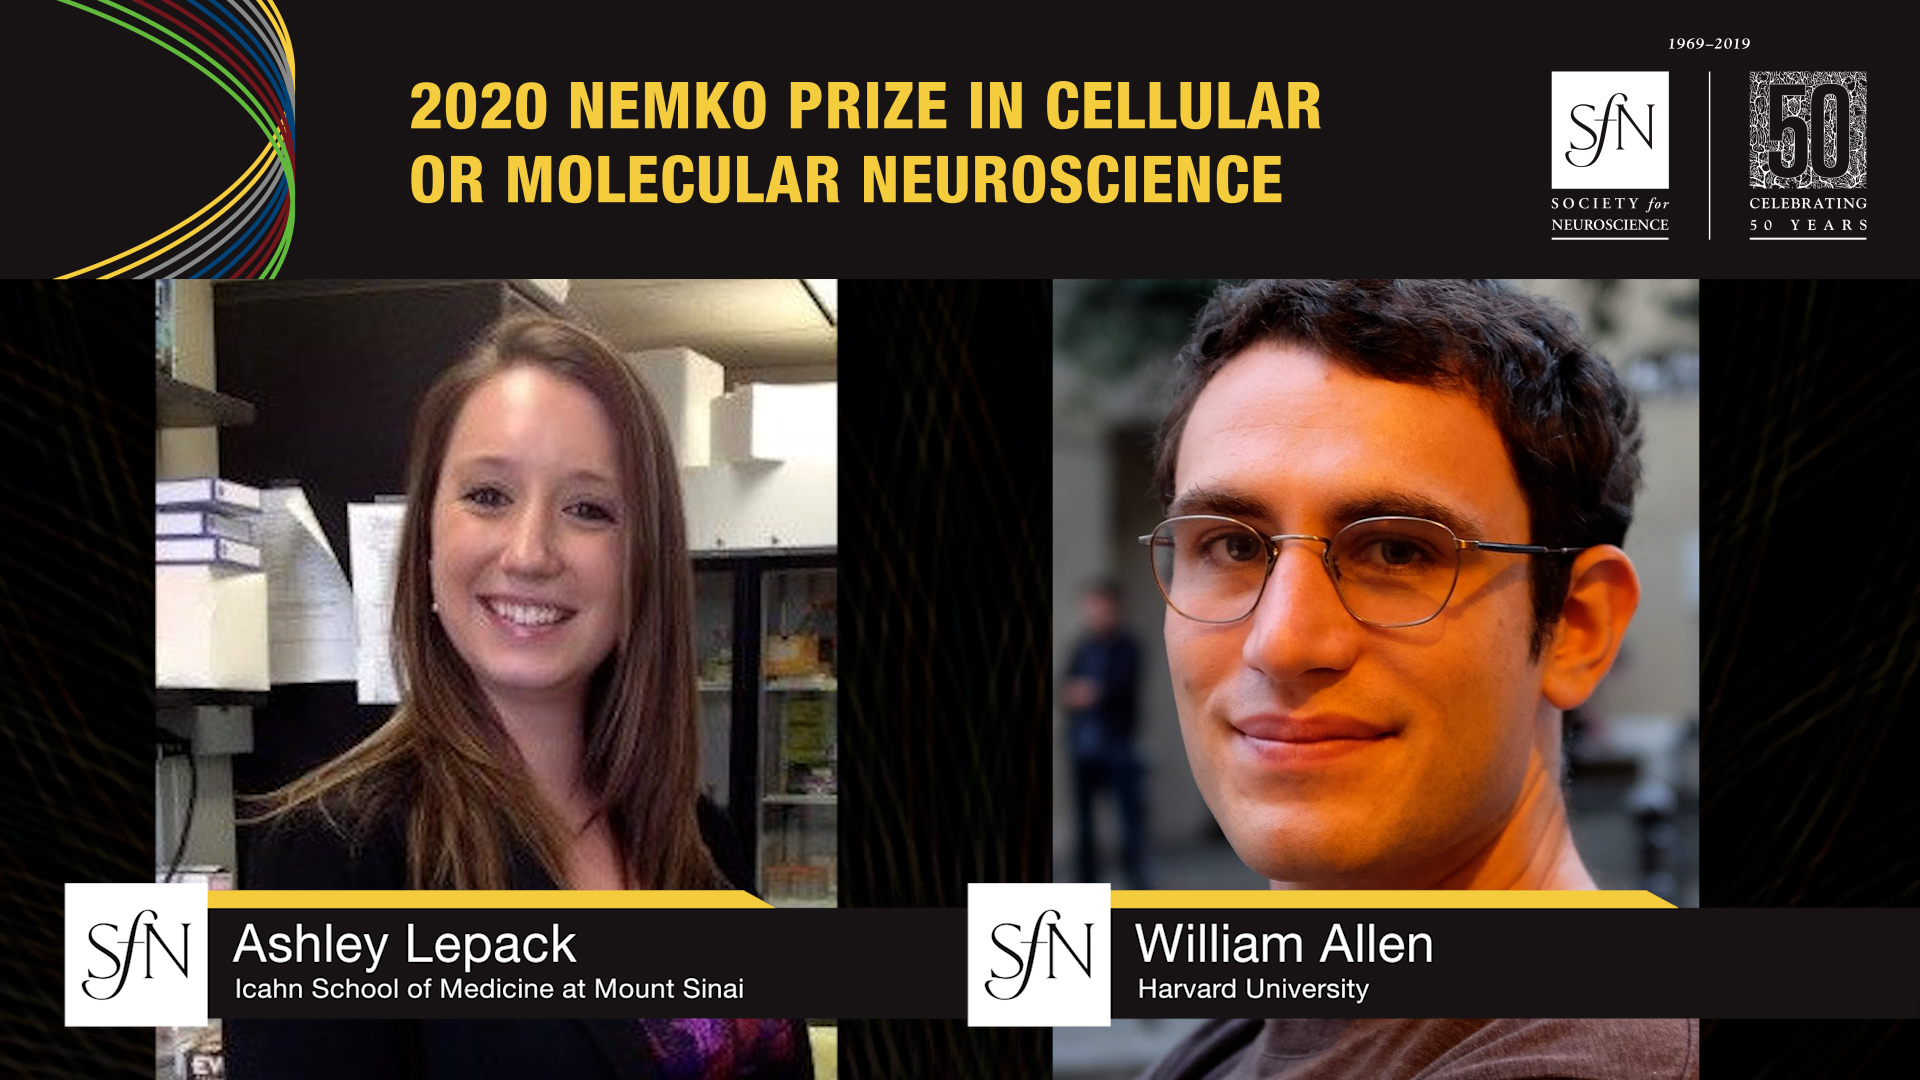 2020 Nemko Prize in Cellular or Molecular Neuroscience Award winners graphic, images of Ashley Lepack Icahn School of Medicine at Mount Sinai and William Allen Harvard University